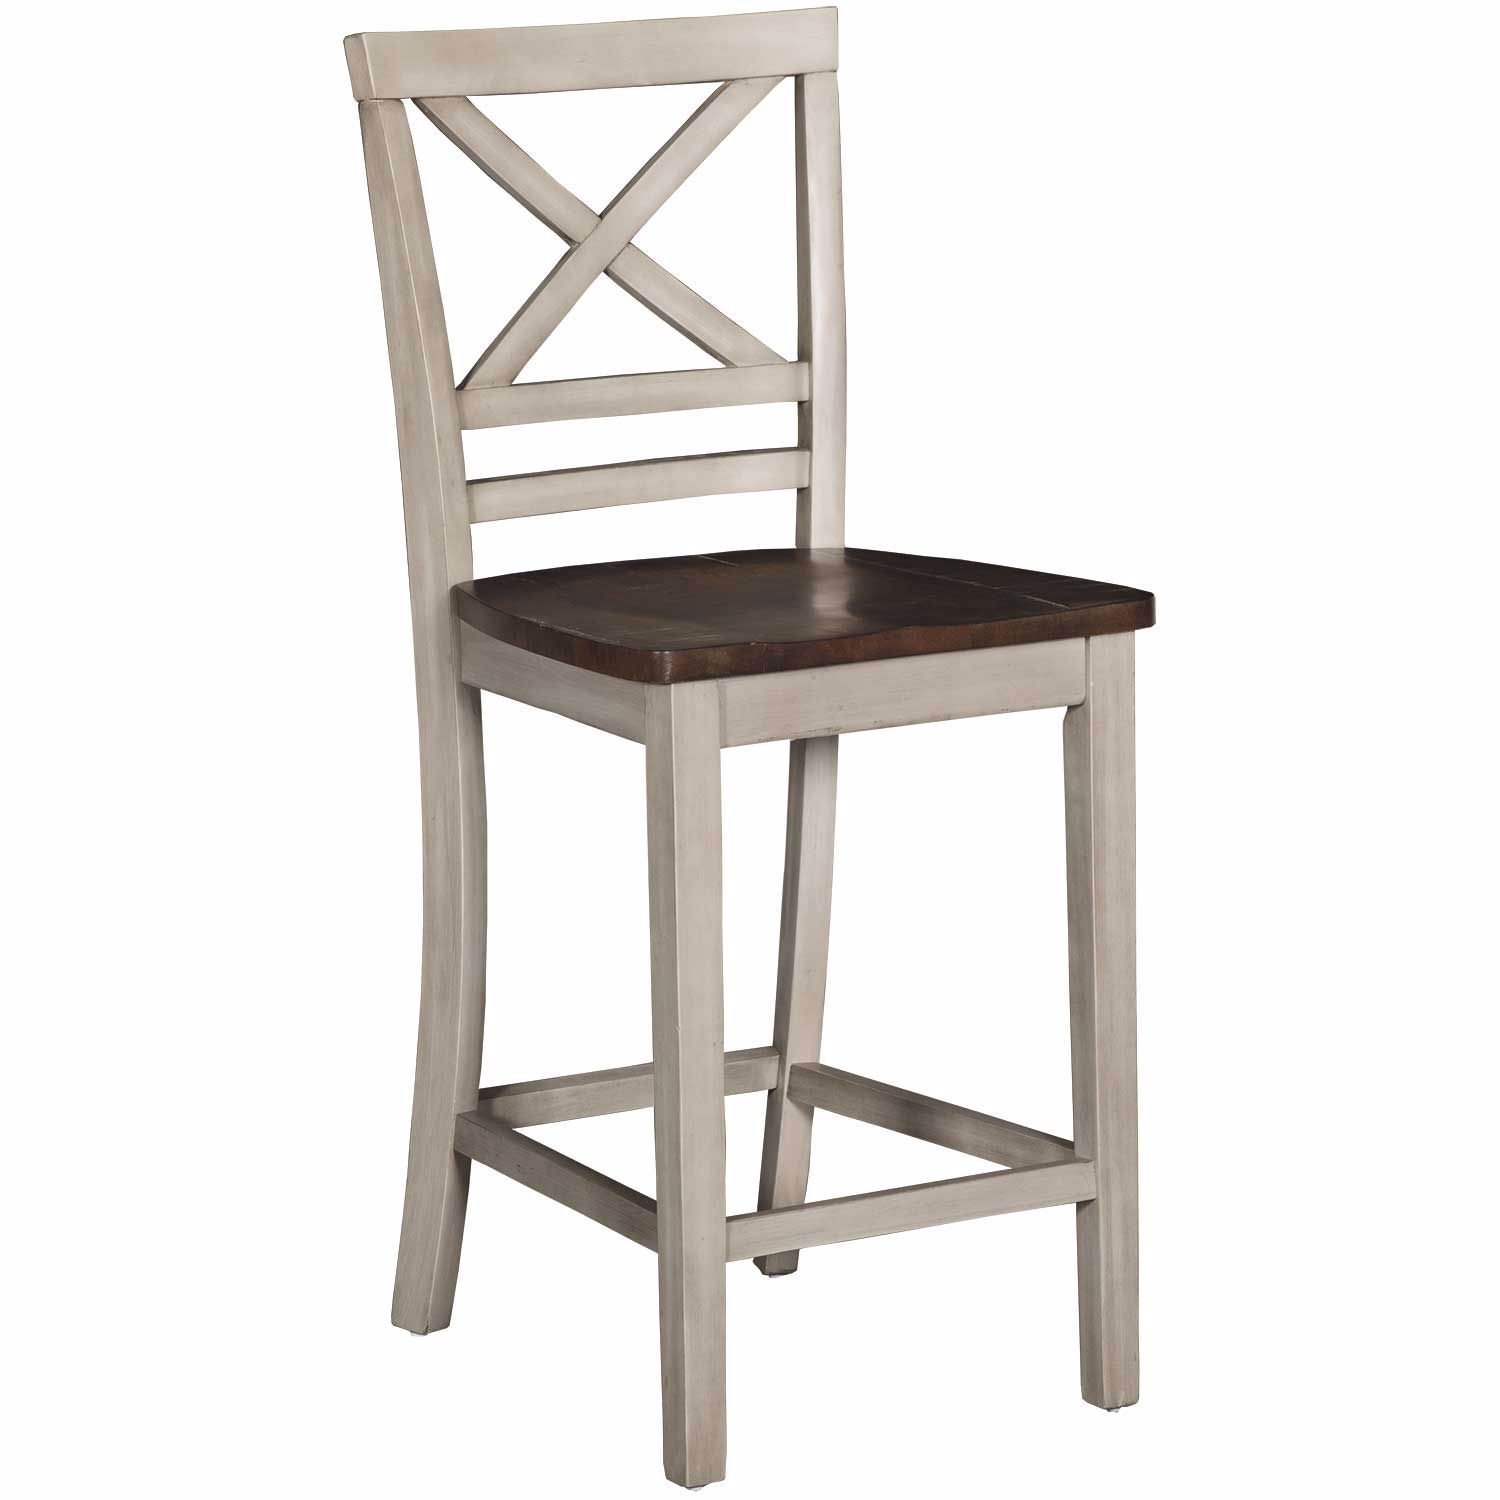 Counter Height Chairs With Arms Fairhaven Counter Height Barstool